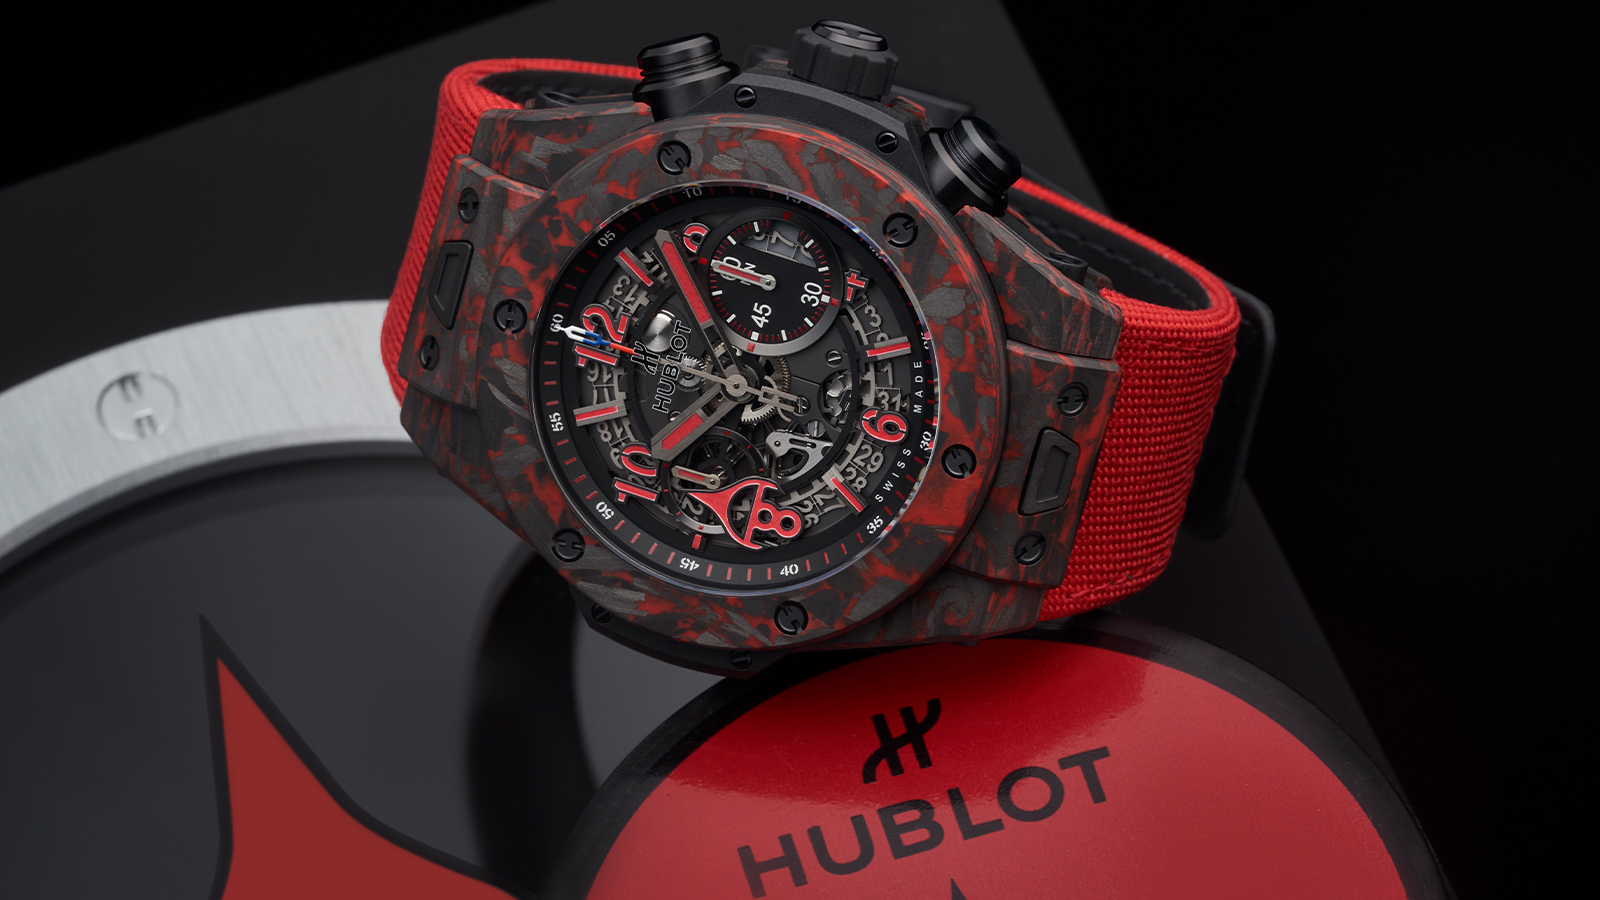 2021 Hublot Big Bang Unico Red Carbon Alex Ovechkin